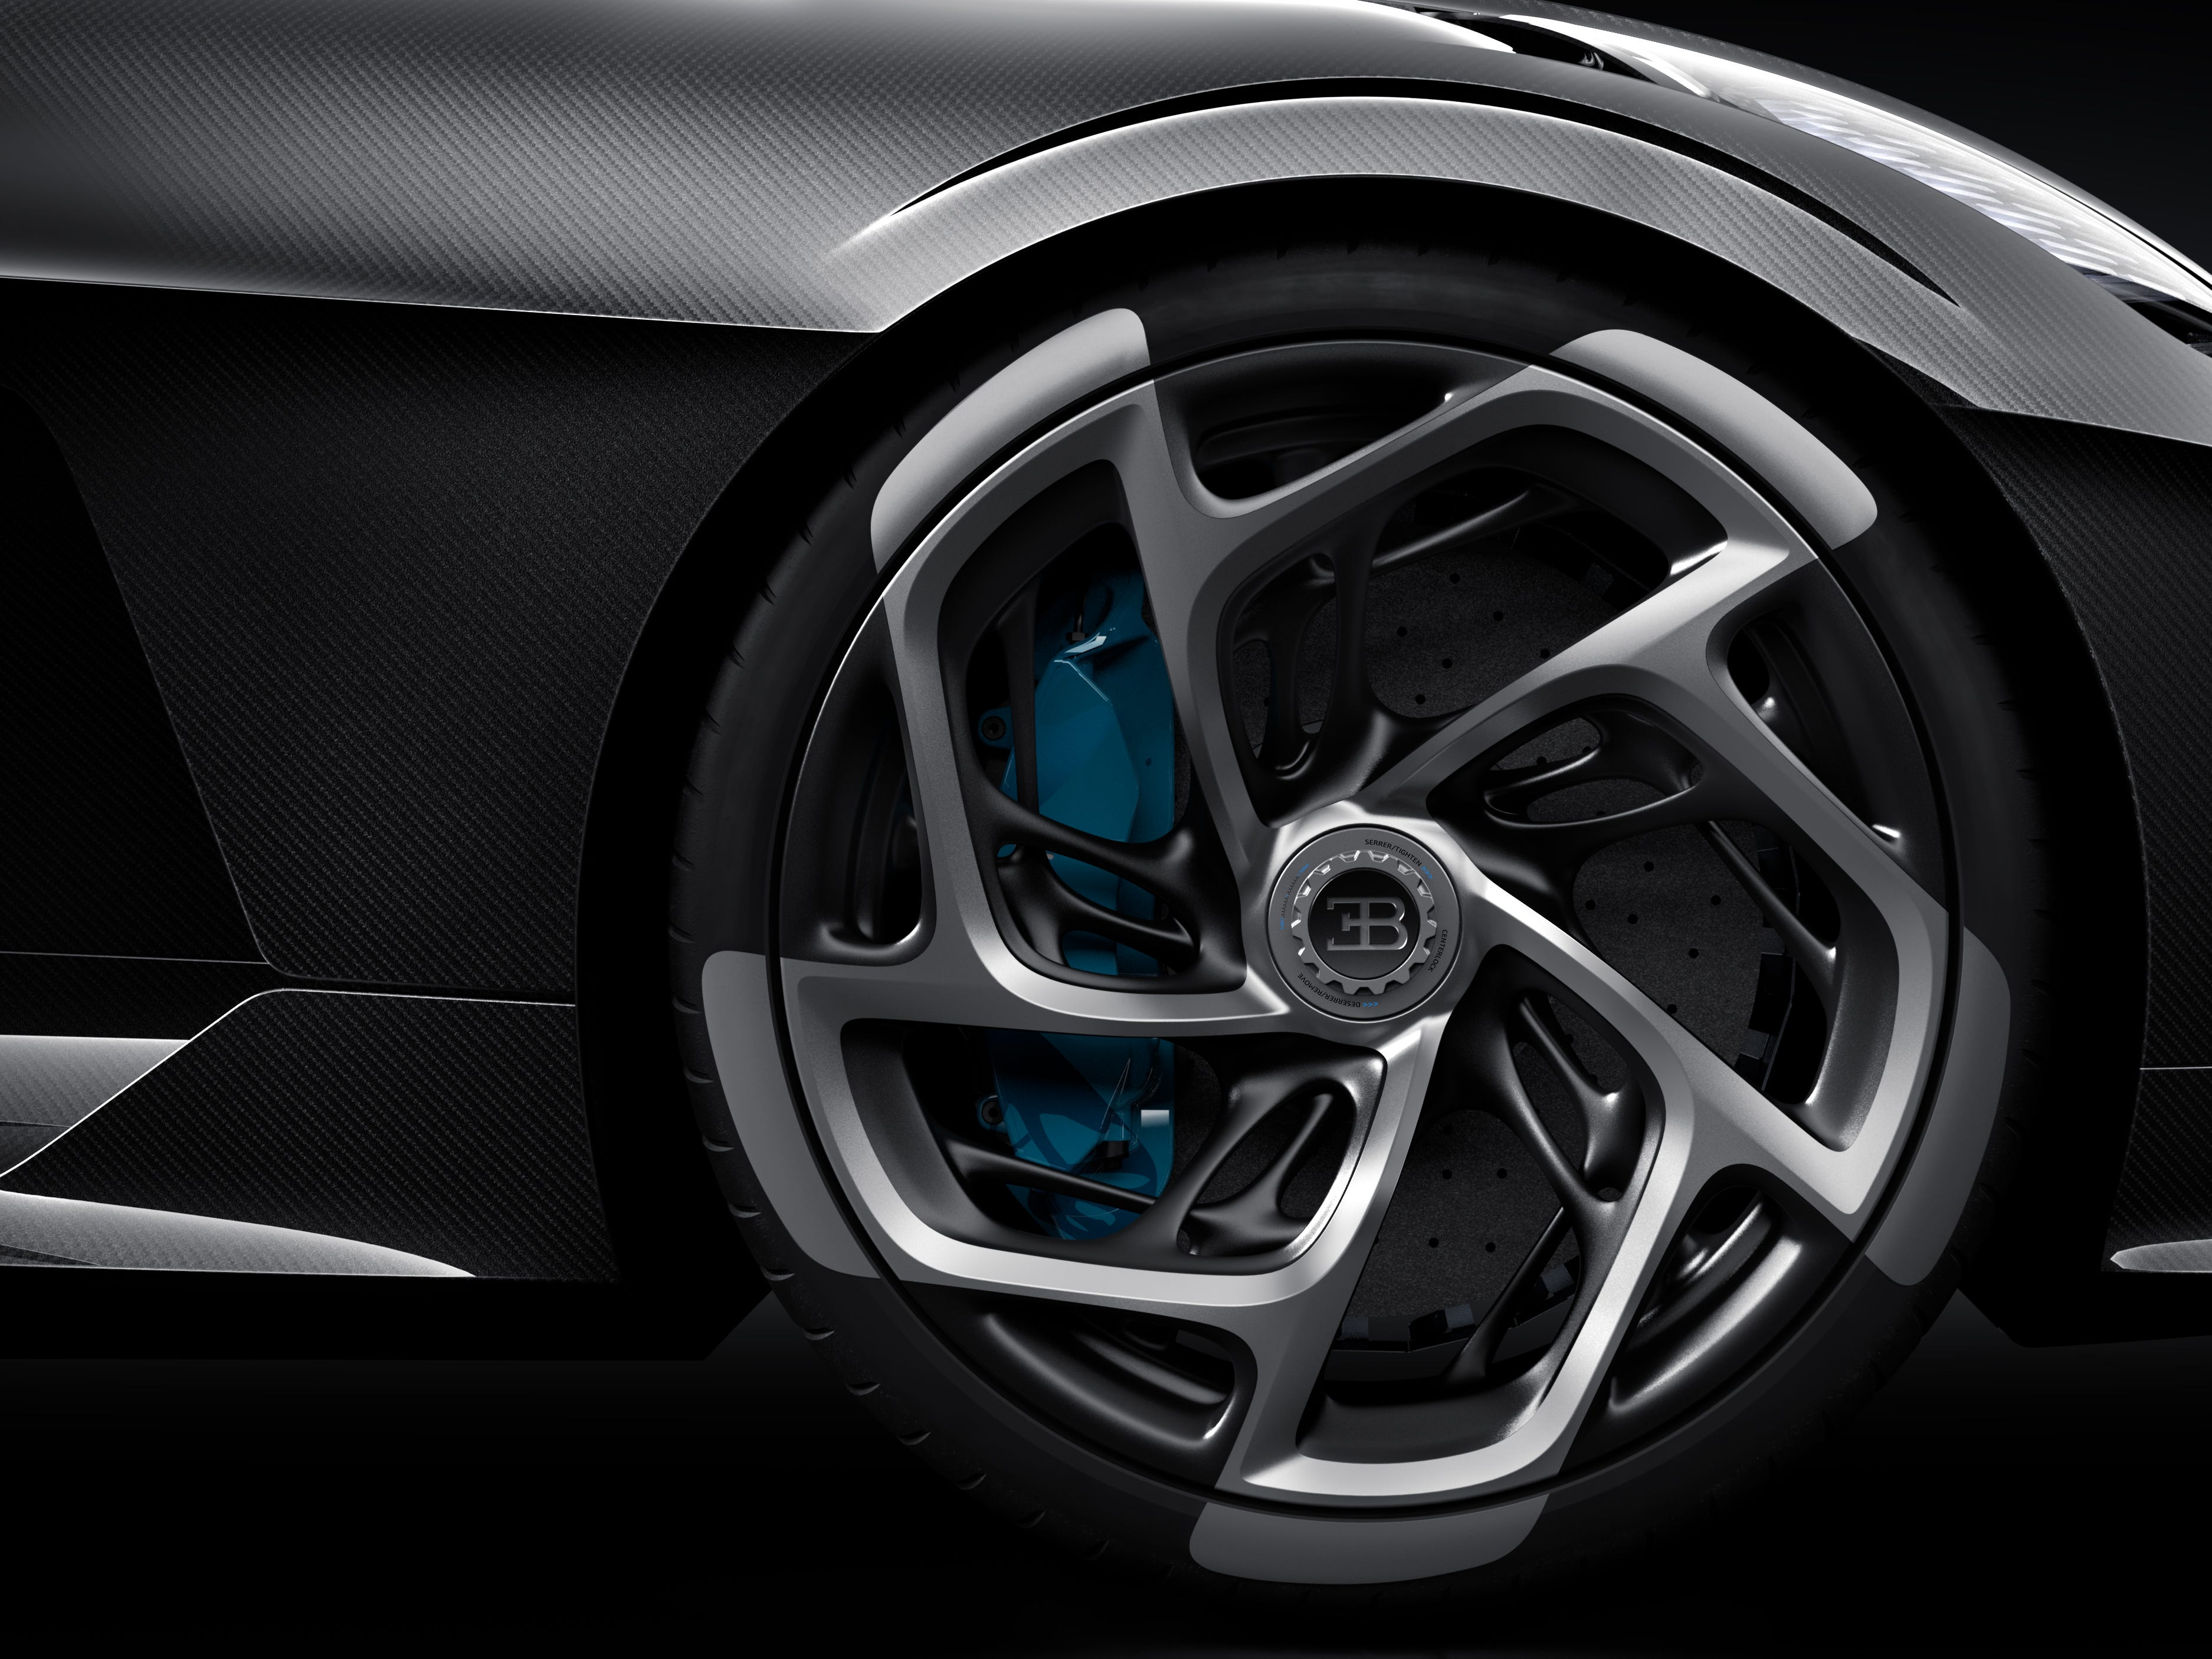 Teal brake calipers add a pop of color to the black-on-black sports car.